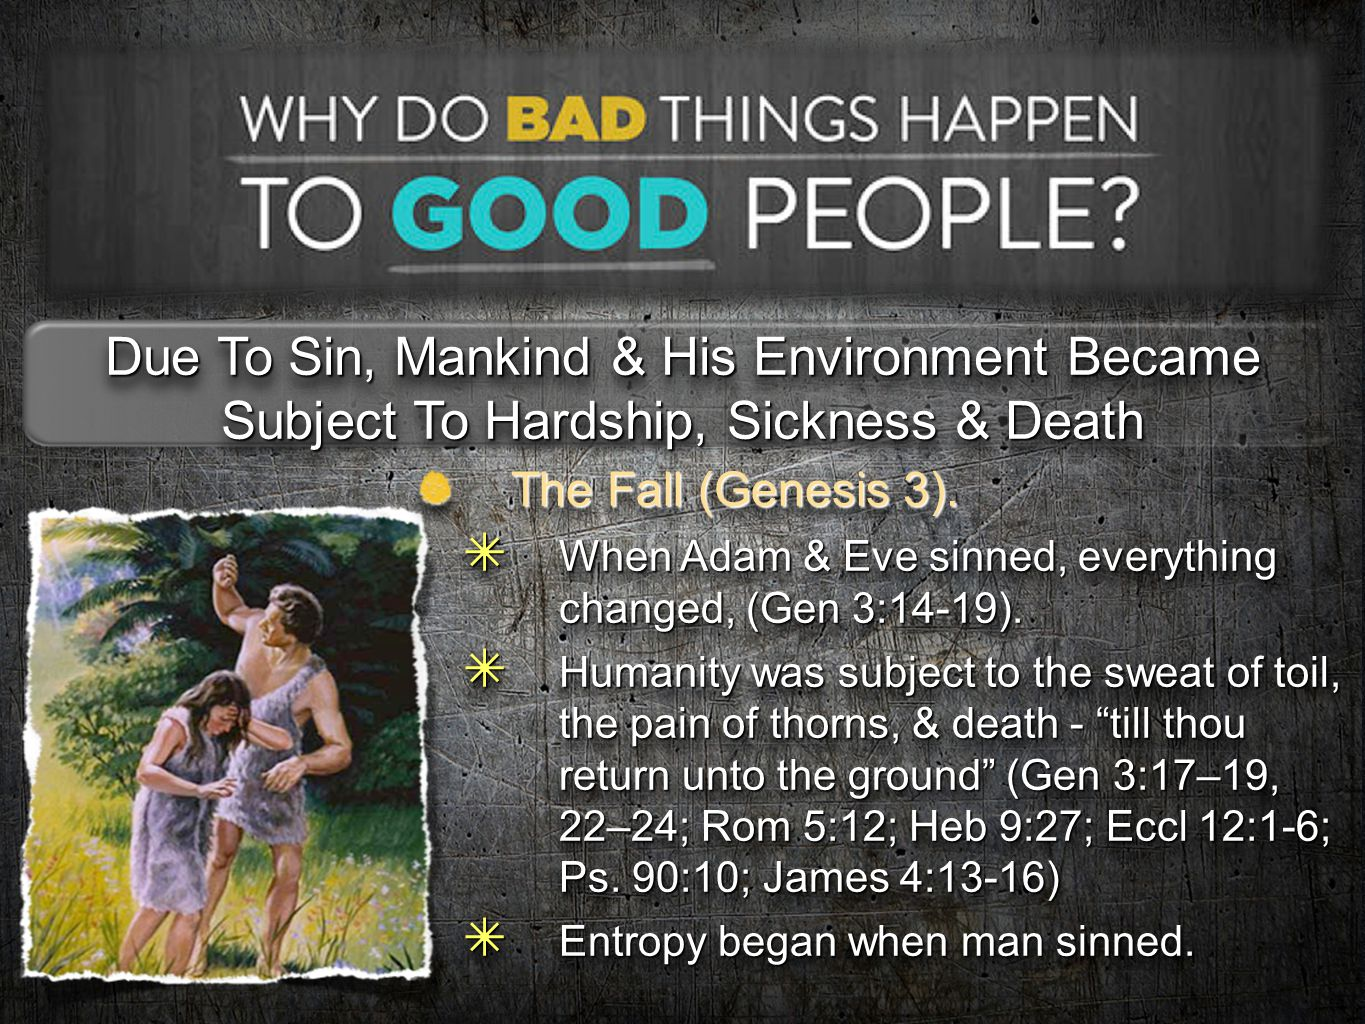 Due To Sin, Mankind & His Environment Became Subject To Hardship, Sickness & Death The Flood (Genesis 6-8).